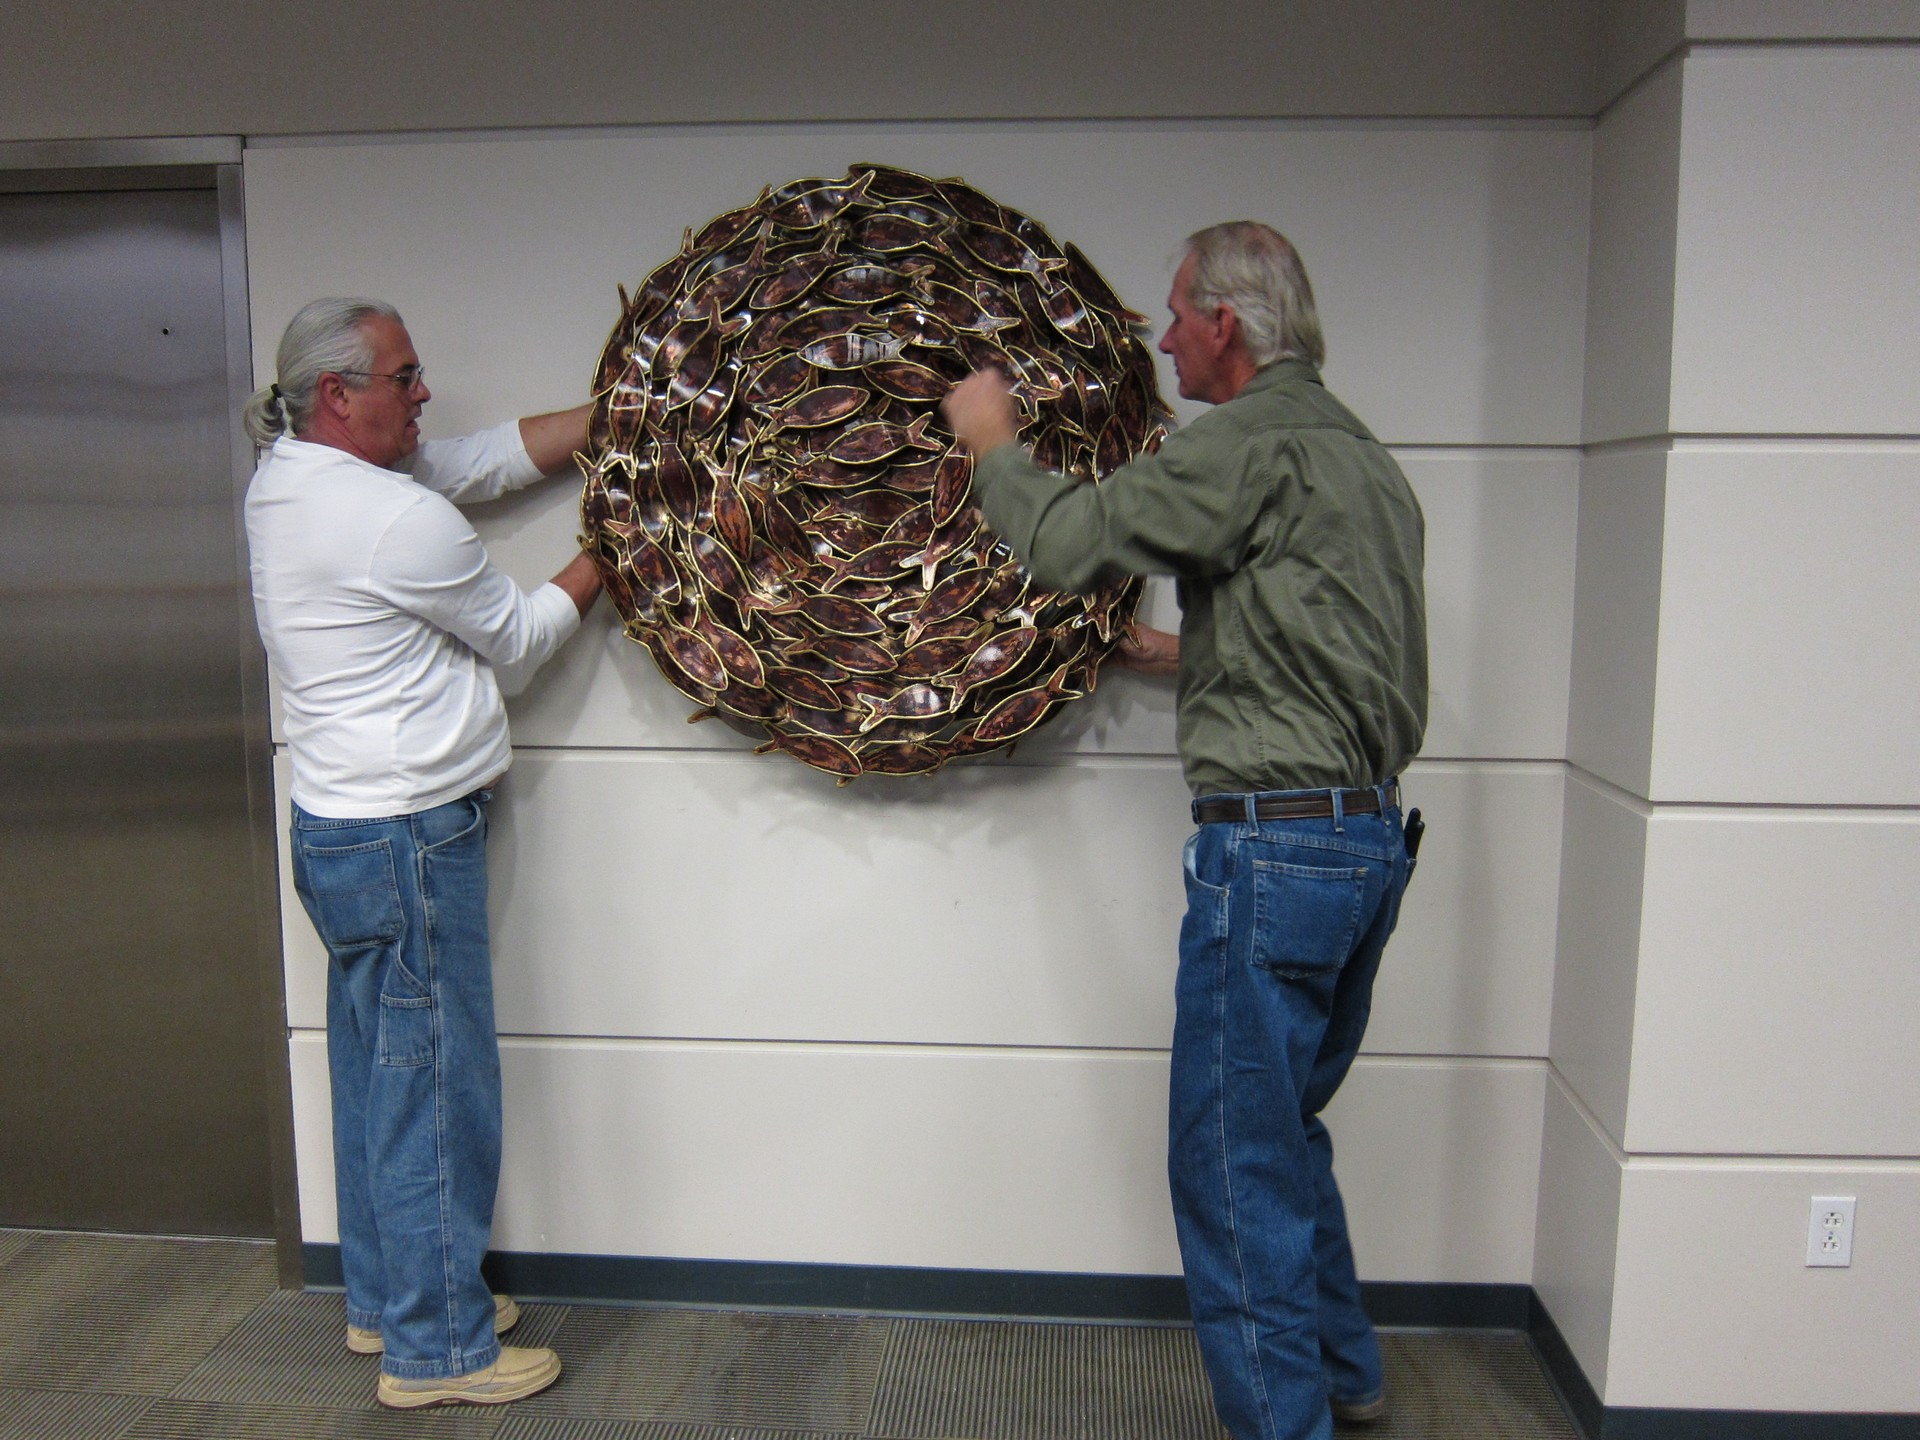 Photo: Bait Ball by Larry Schwartz being installed at the 'NOAA South East Regional Offices, St. Petersburg, FL